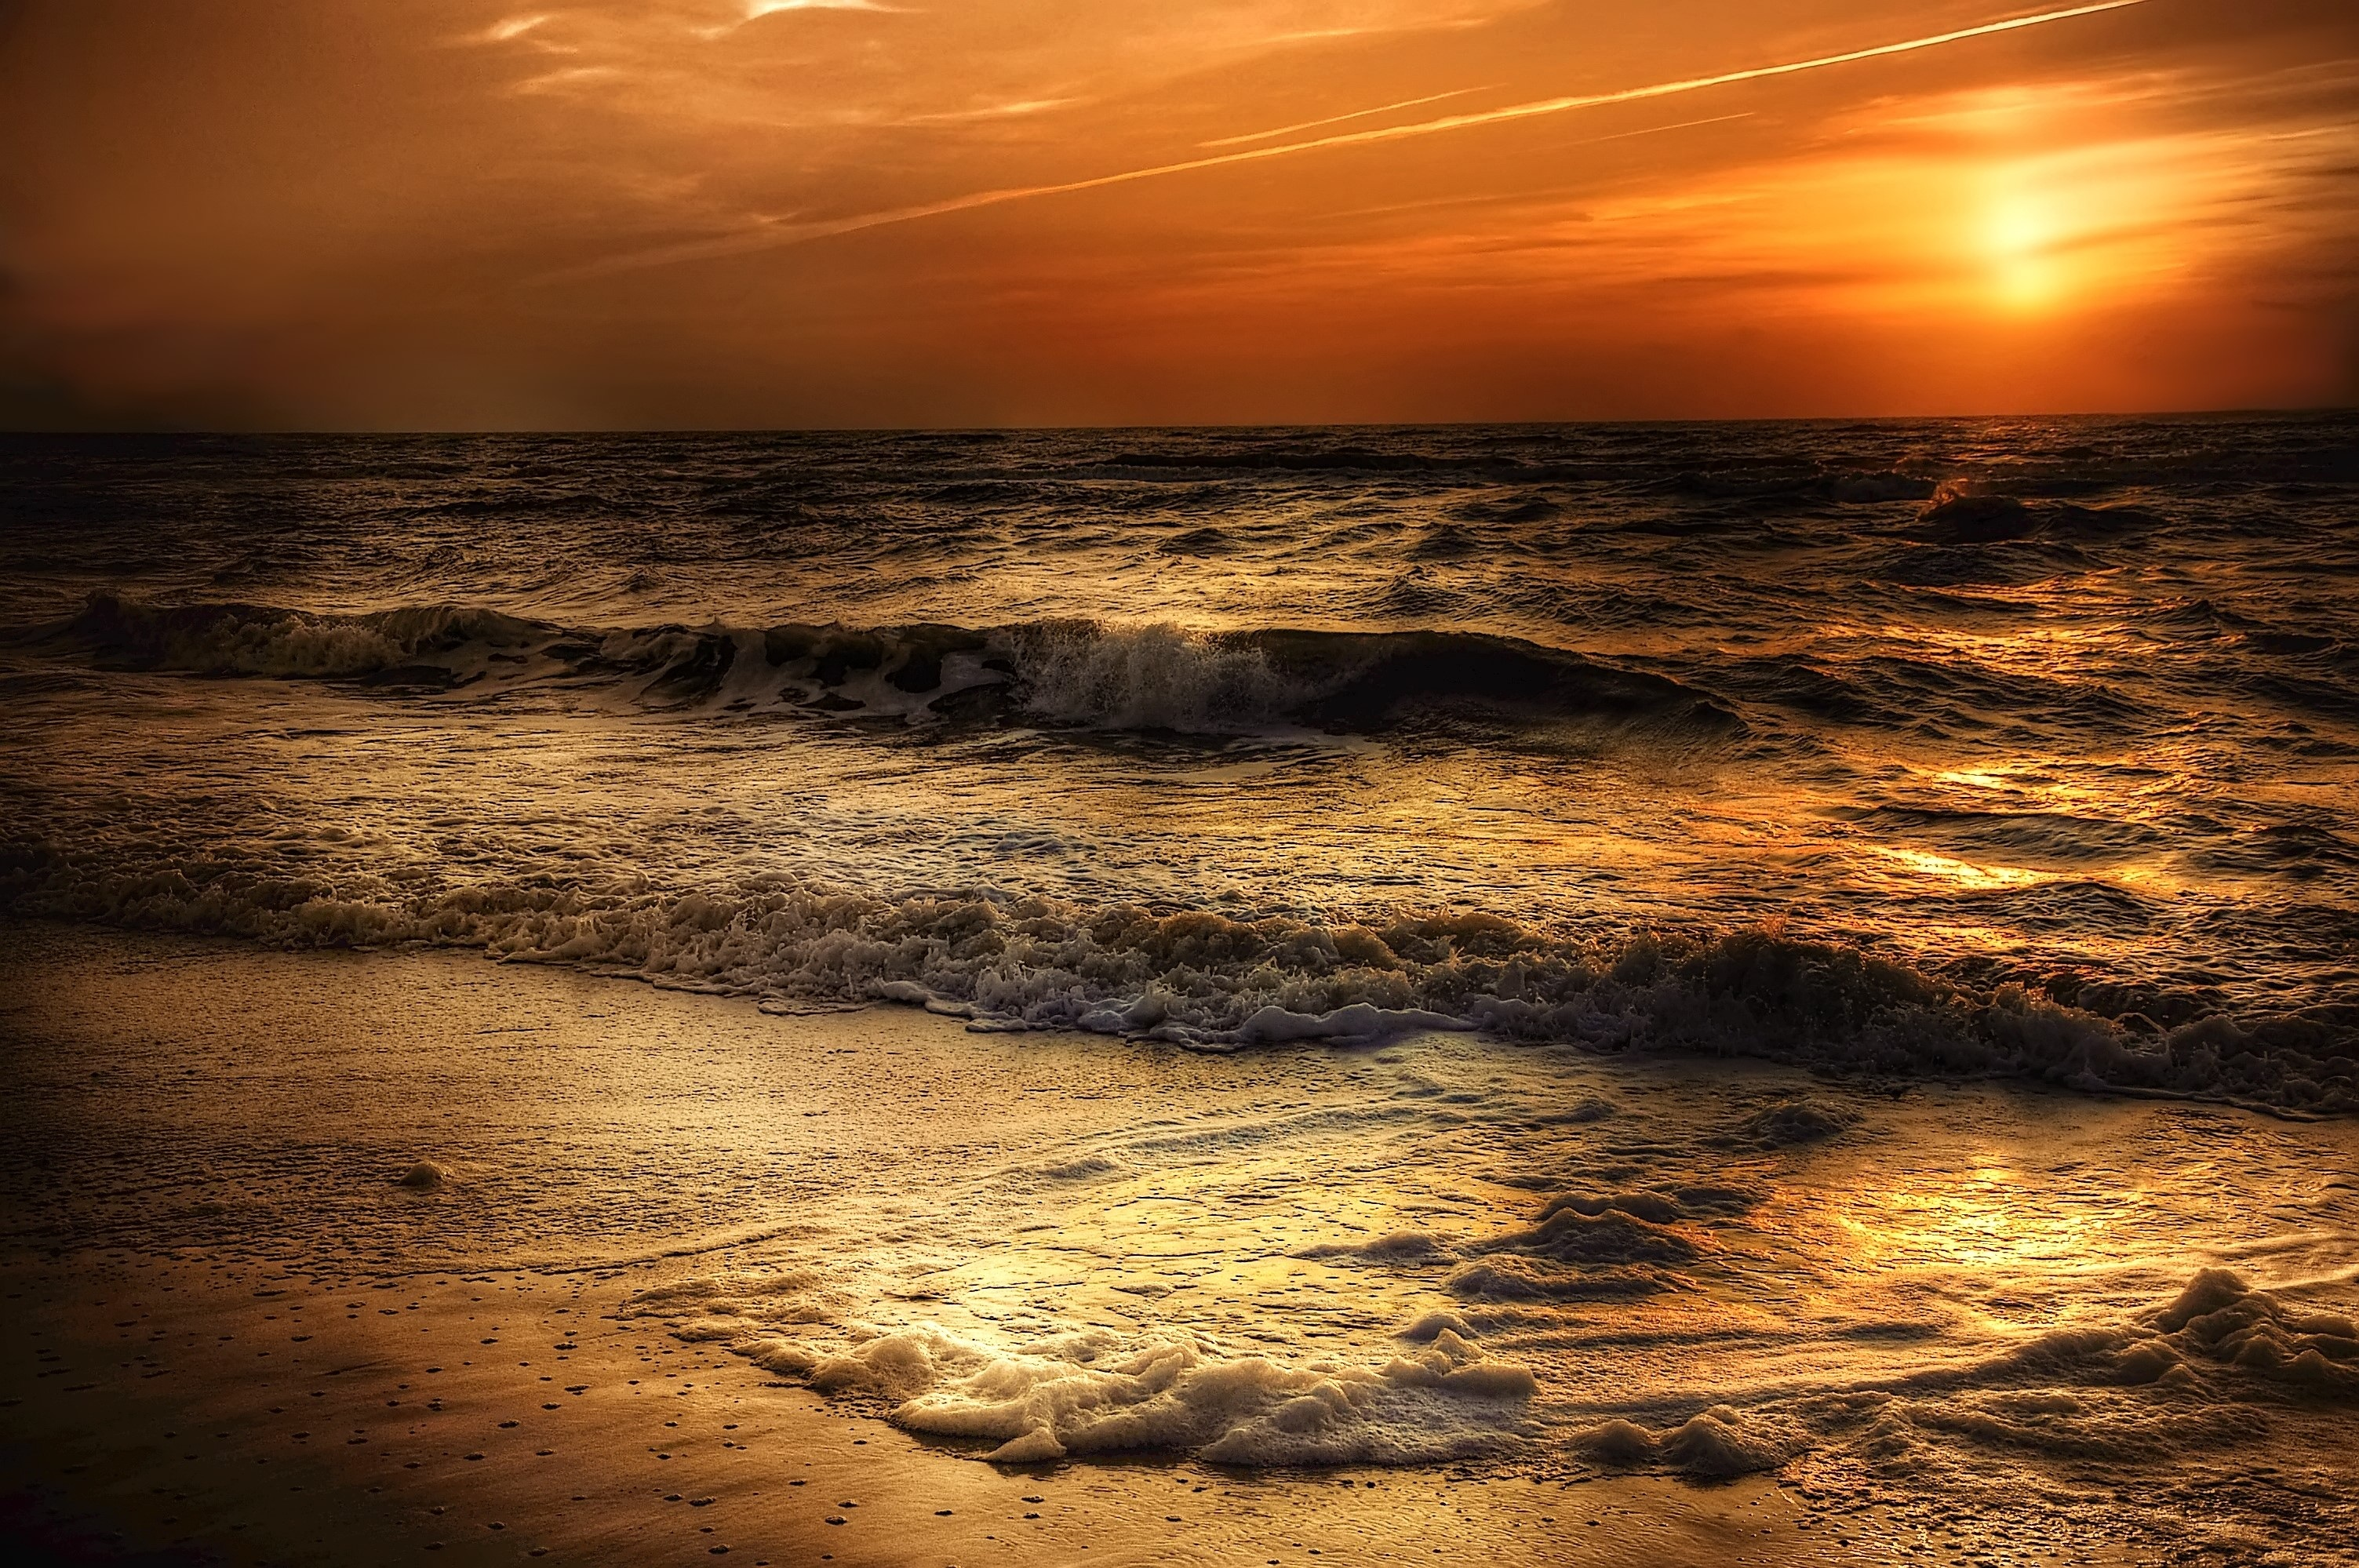 Wallpaper Iphone X Commercial Free Stock Photo Of Afterglow Atmospheric Beach